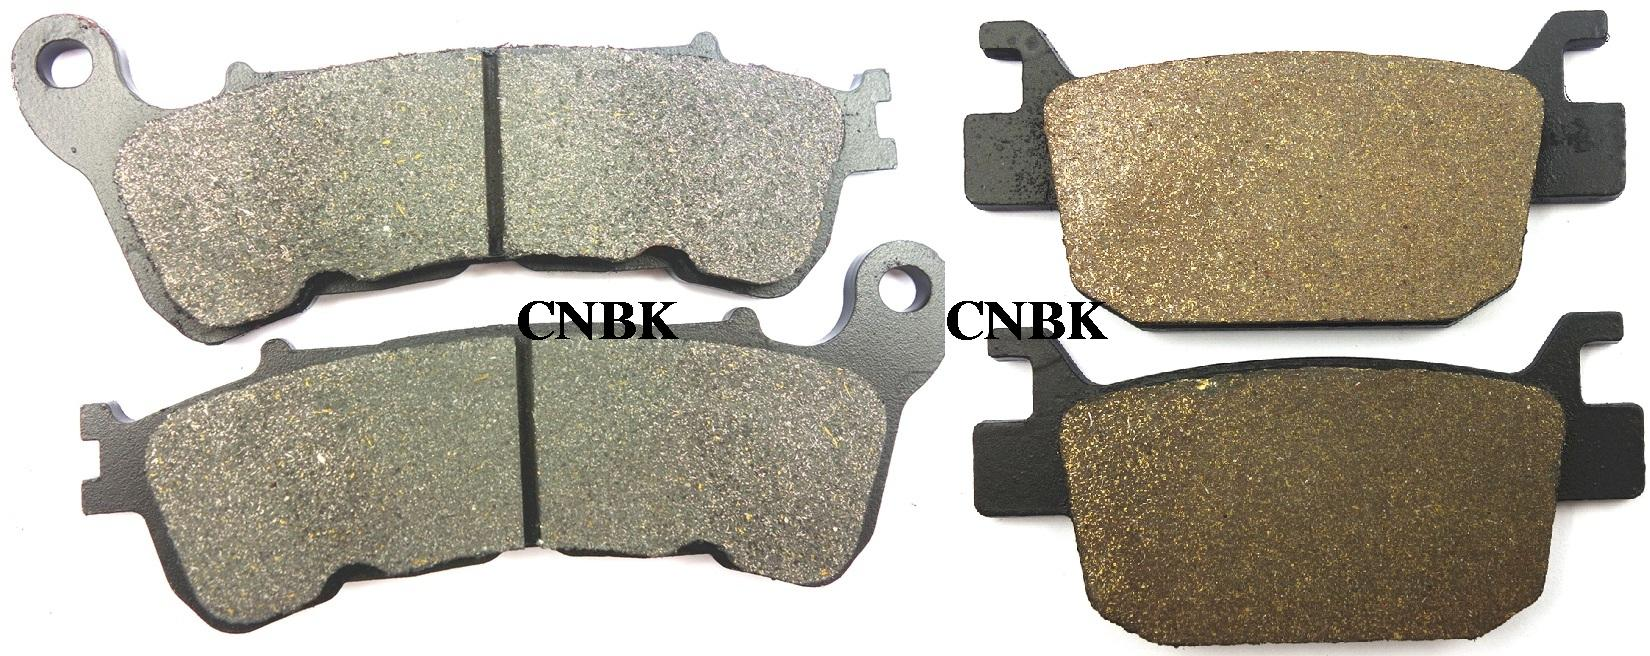 F r disc brake pads set fit honda 250 nss forza ex z nss250